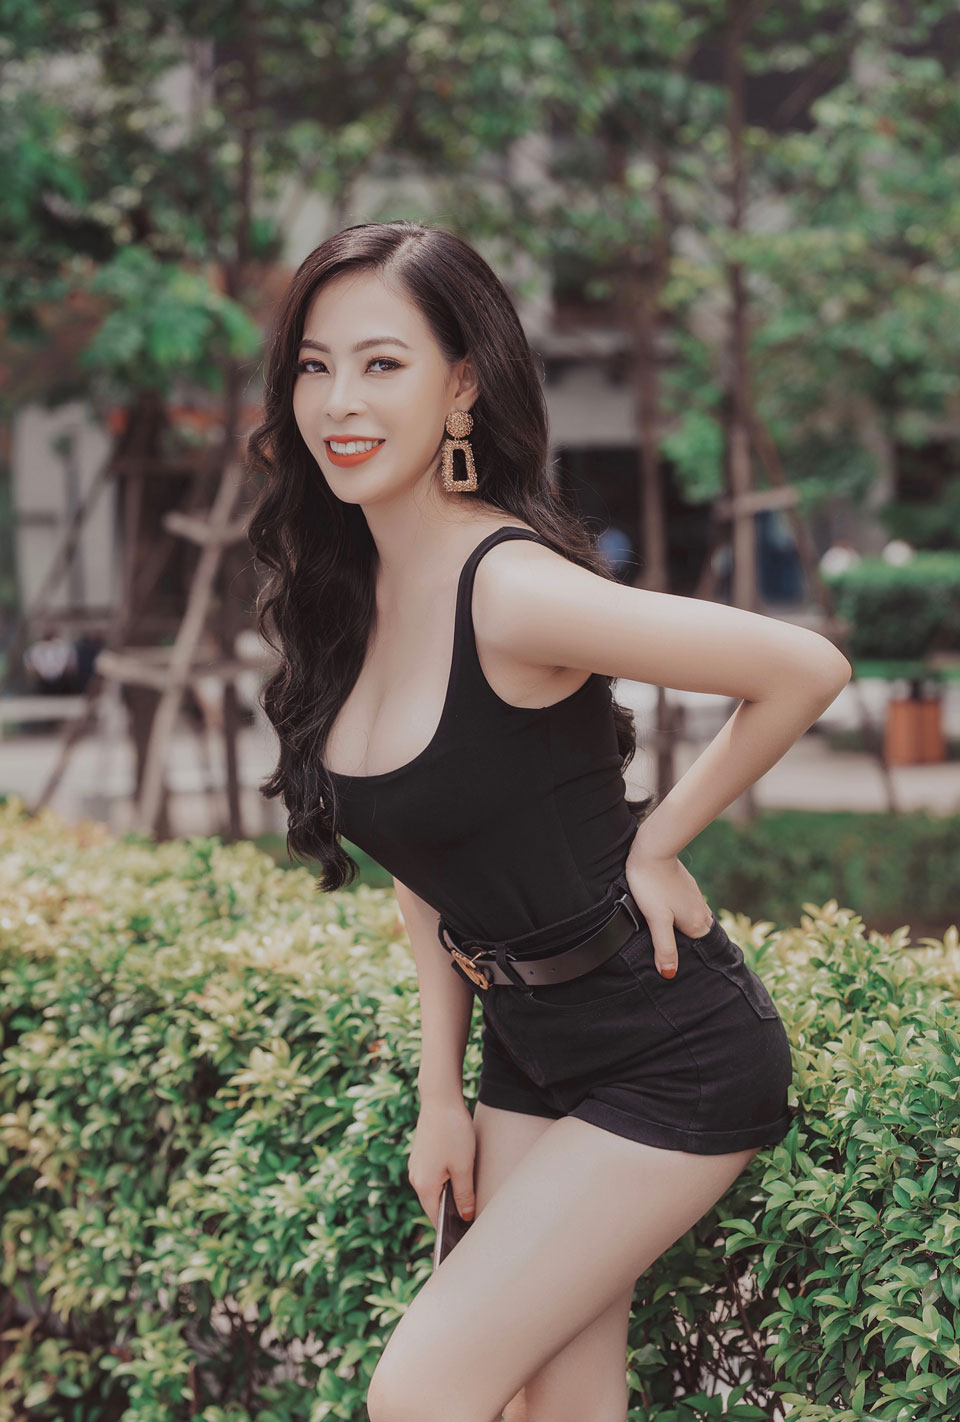 /UserFiles/miss/miss2019/DinhThuyDuongCenInvest/Dinh-Thuy-Duong-(6).jpg